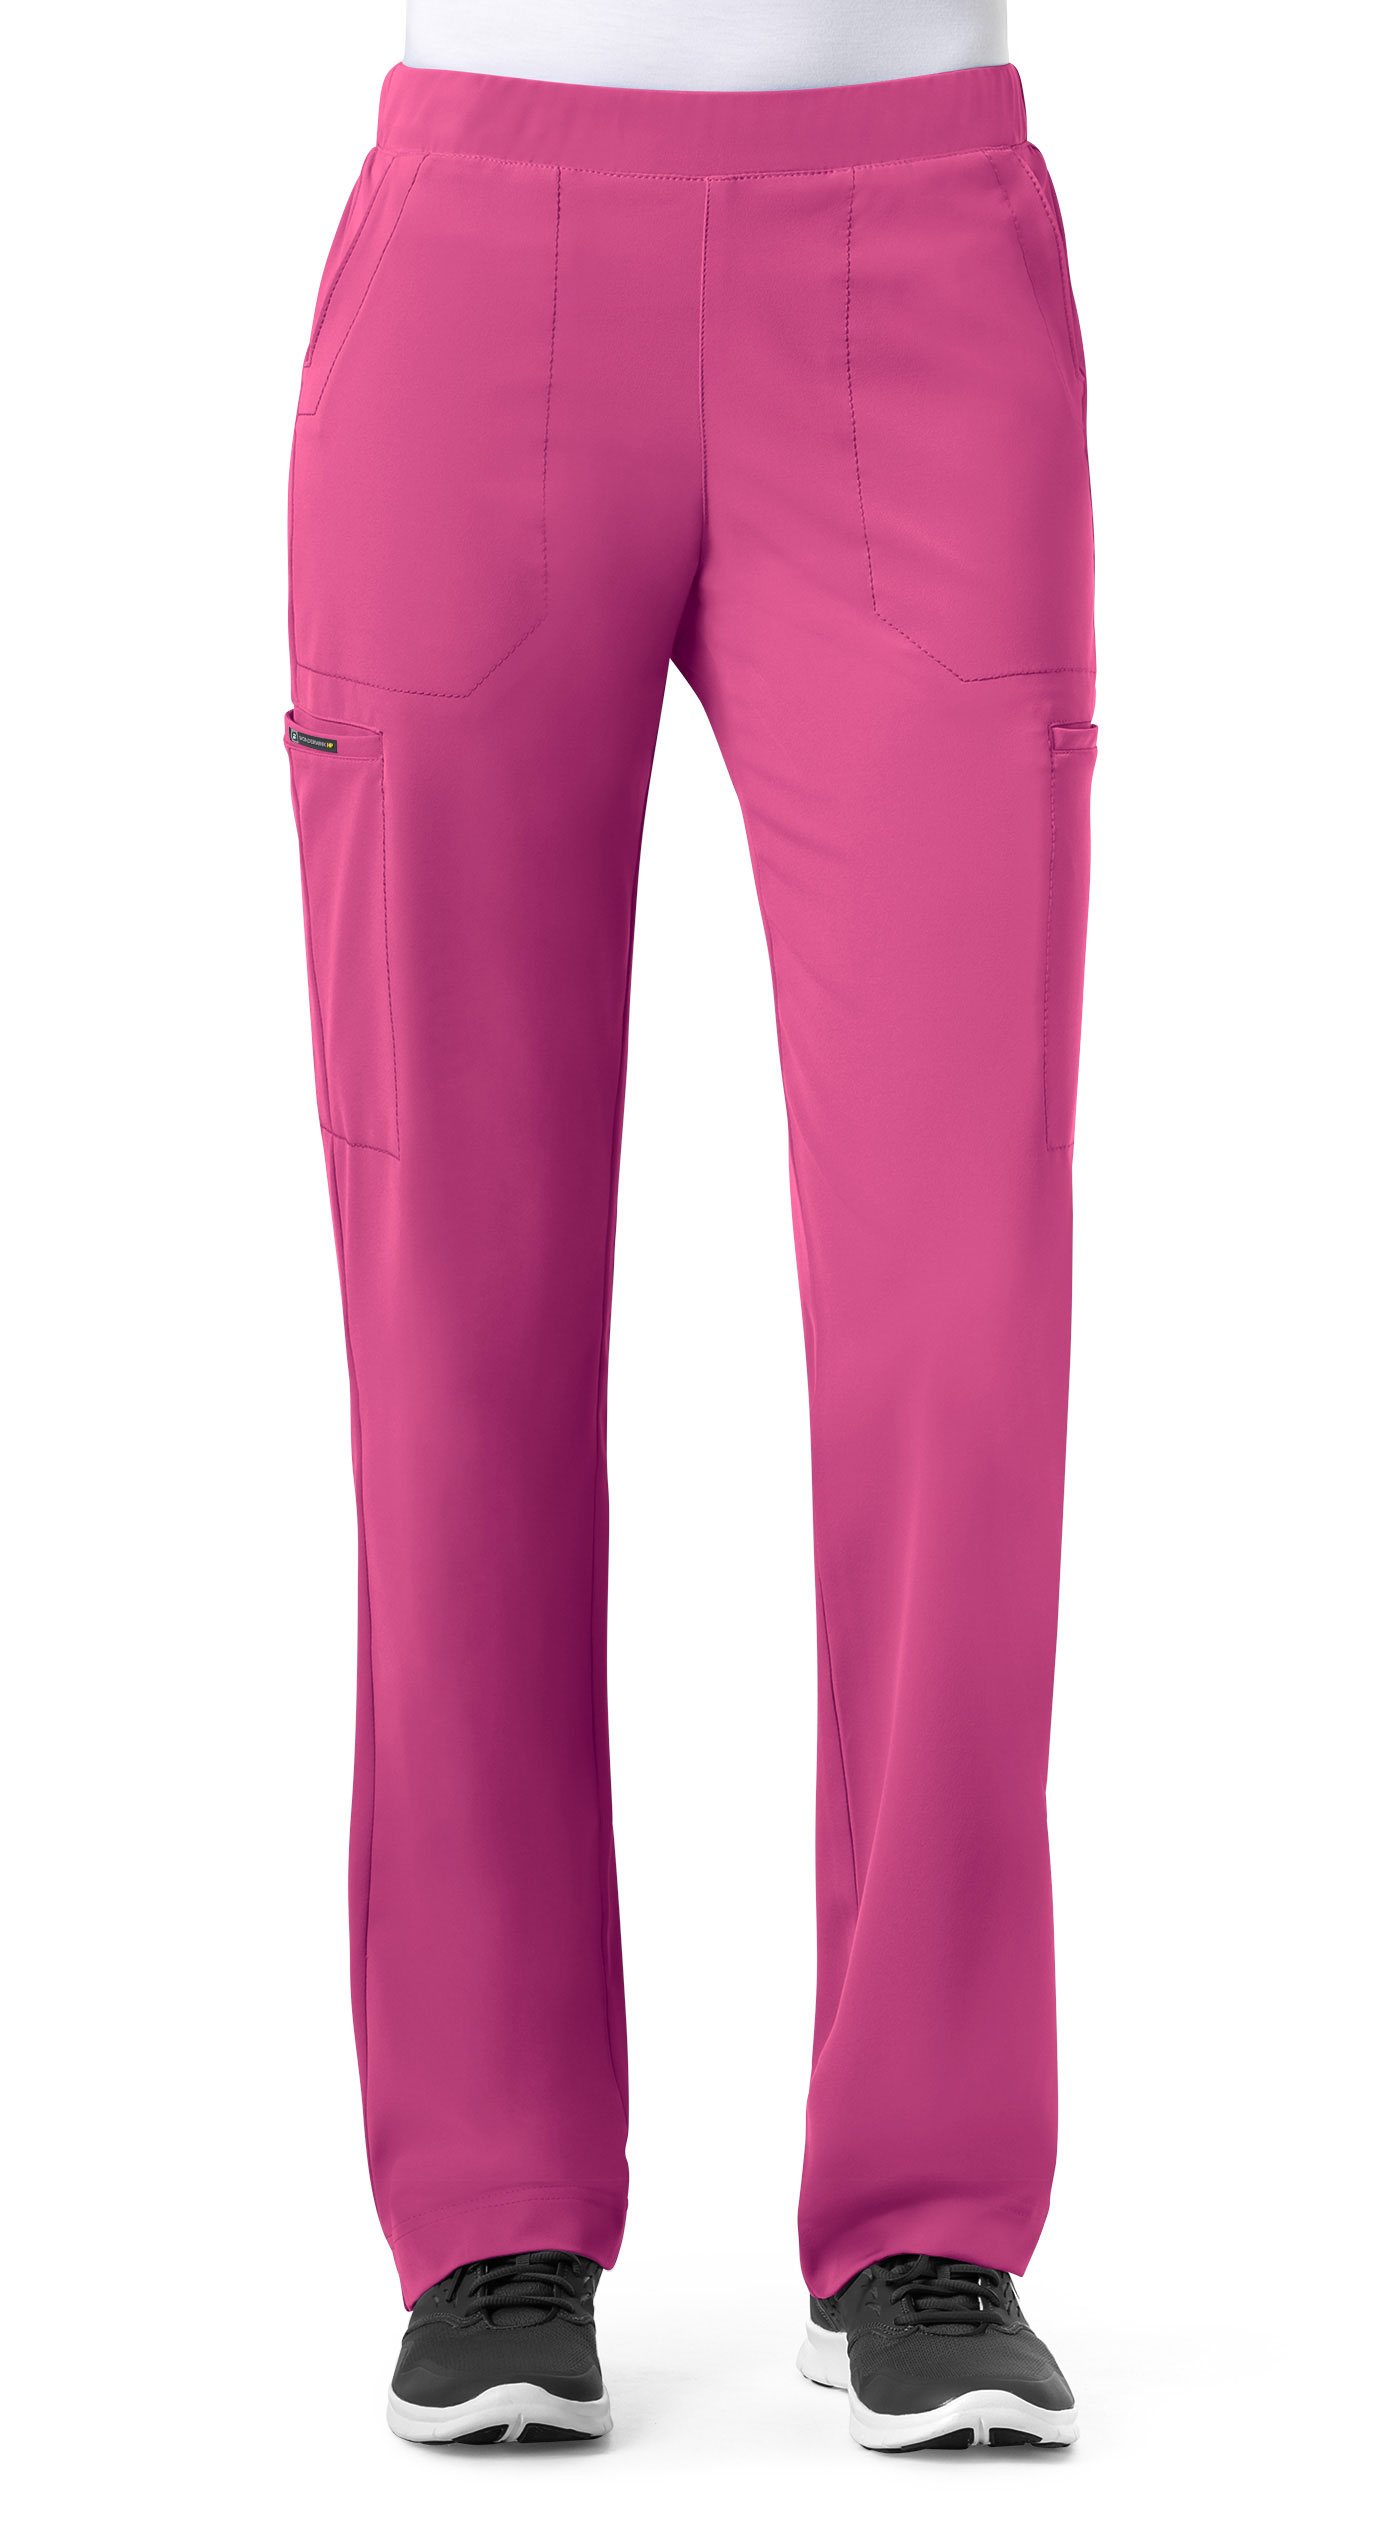 Ladies Wonder Wink Hybrid Modern Pull On Scrub Pant